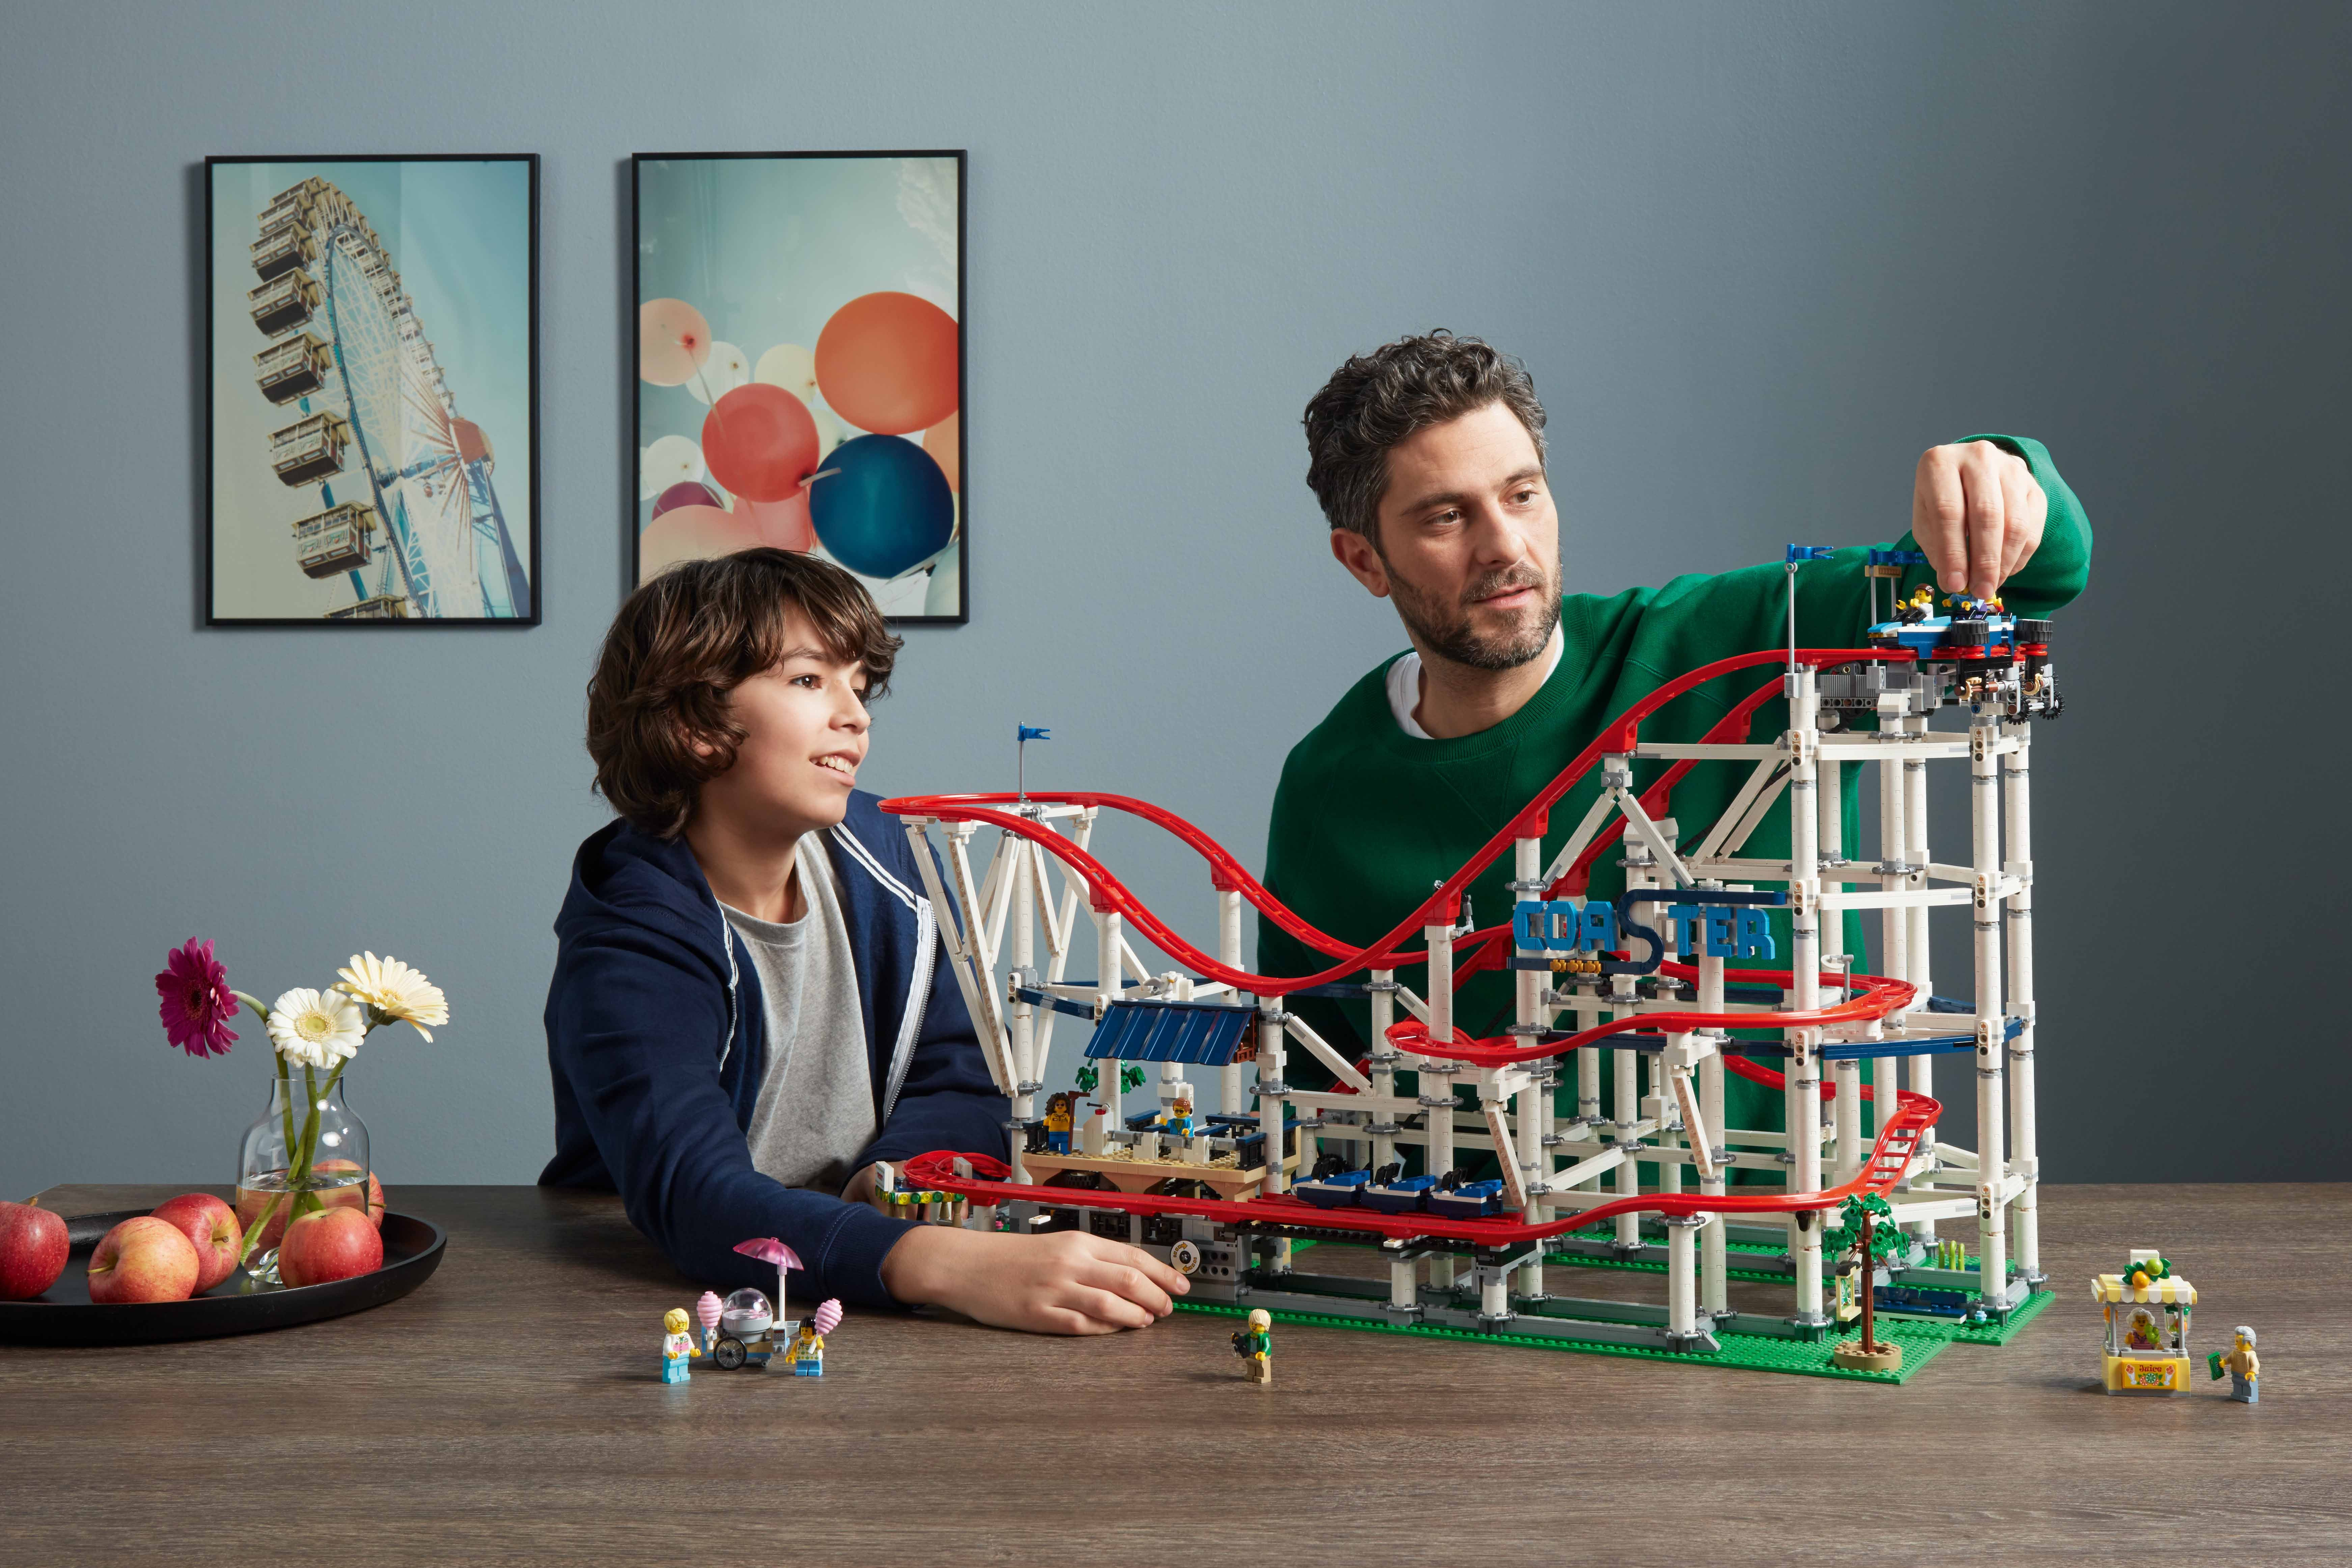 Lego S New Roller Coaster Set Can Be Upgraded To Power